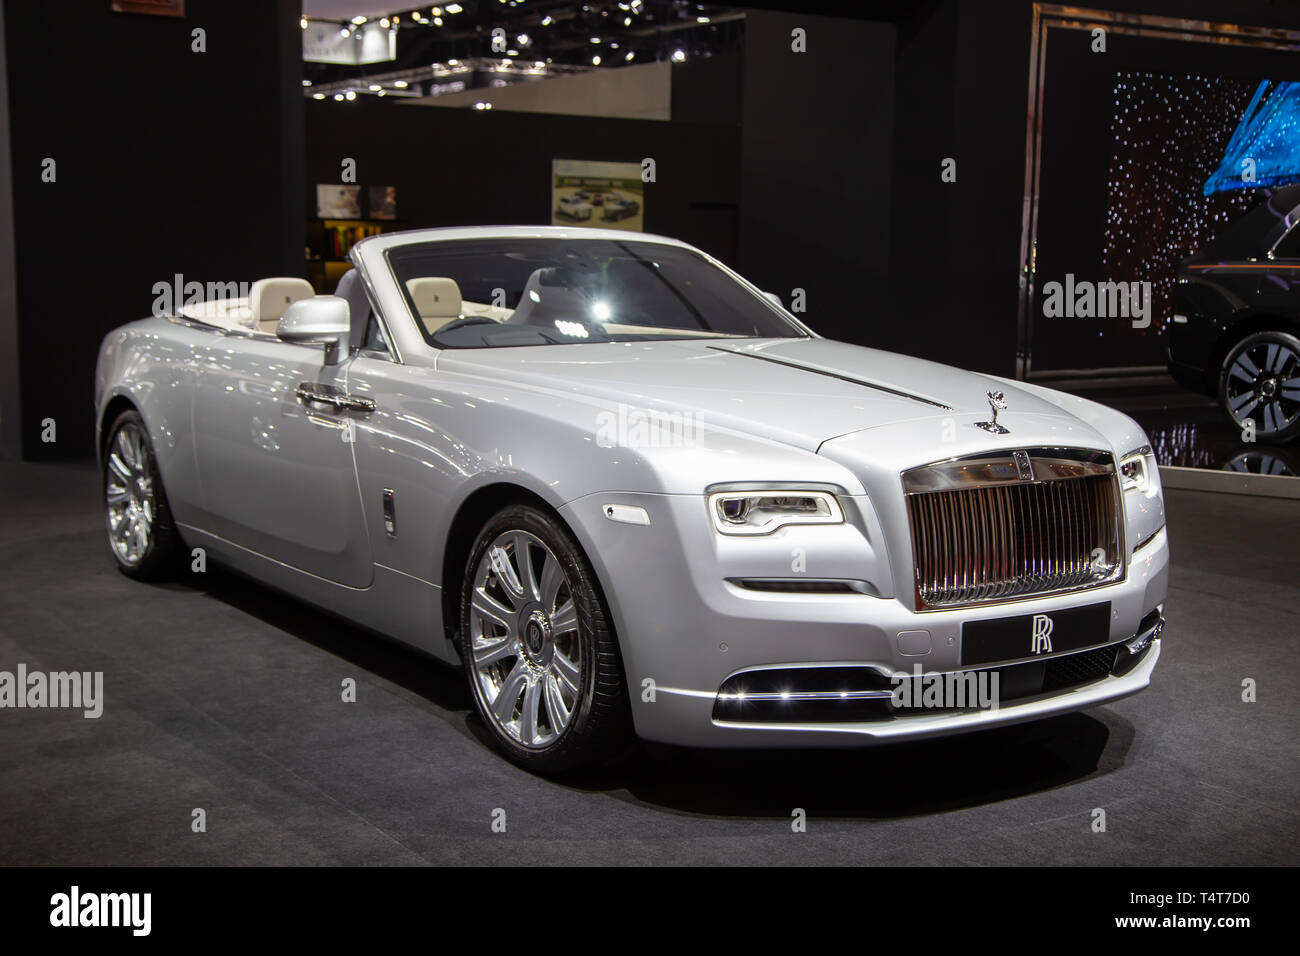 Nonthaburi, Thailand - April 3, 2019: Rolls Royce Ghost Convertible luxury car presented in Motor Show 2019 - Stock Image